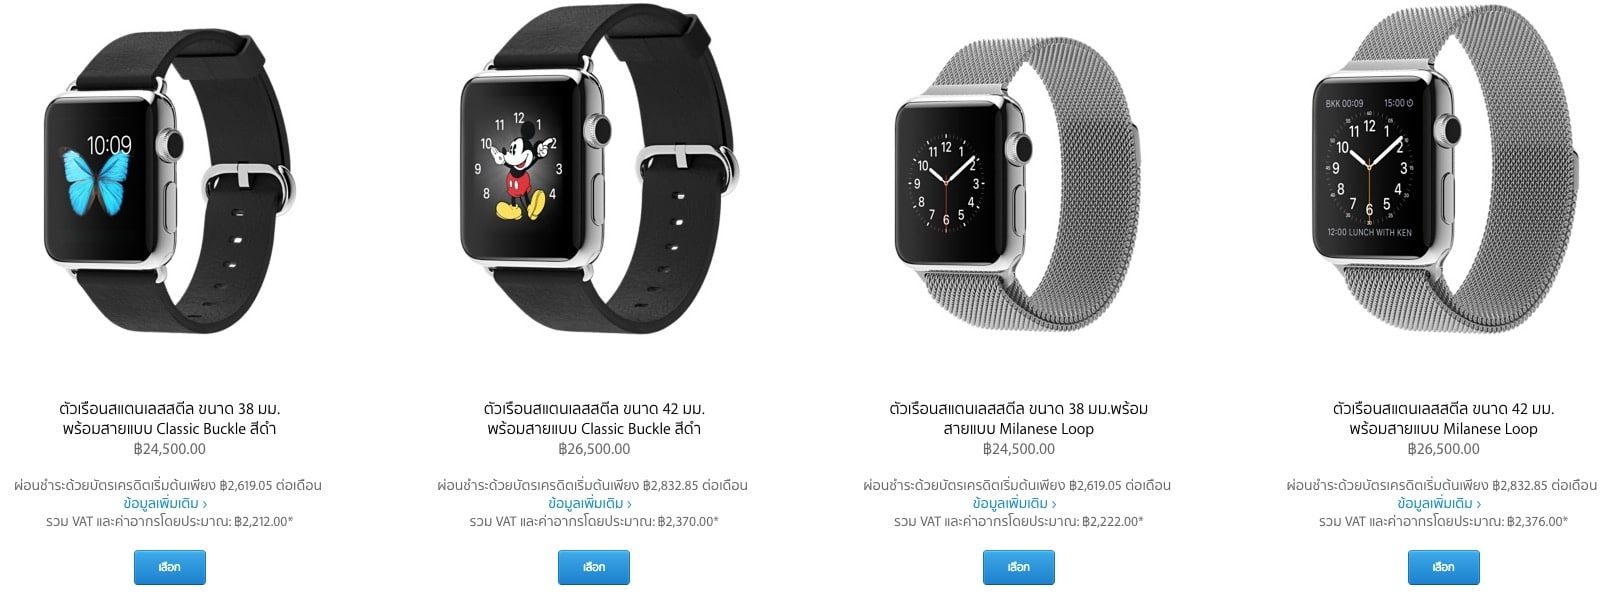 apple-watch-price-in-thailand-sport-collection-stainless-steel-edition.09 PM